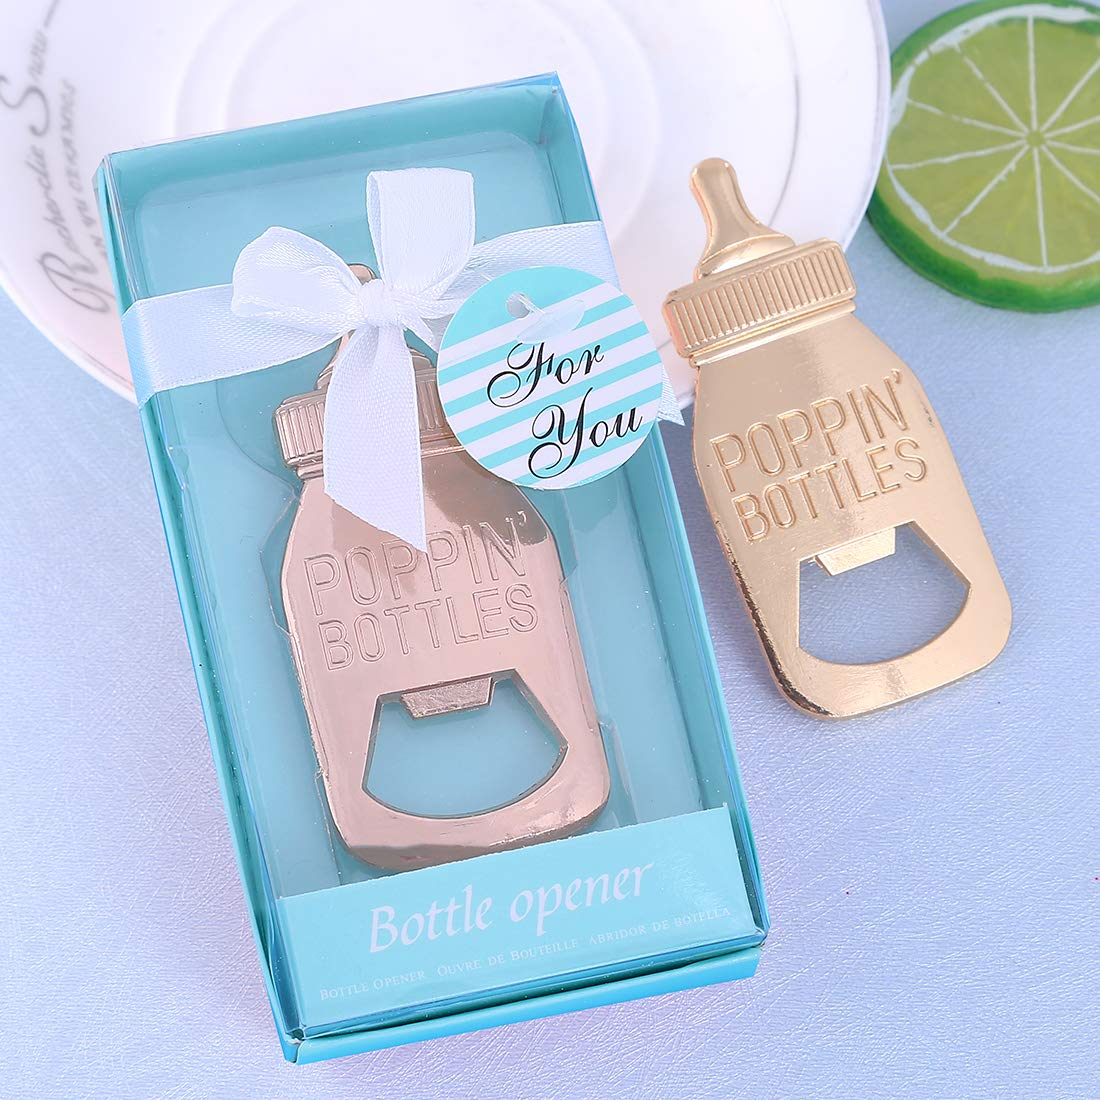 Yuokwer 24pcs Bottle Opener Baby Shower Favor for Guest,Rose Gold Feeding Bottle Opener Wedding Favors Baby Shower Giveaways Gift to Guest, Party Favors Gift & Party Decorations Supplies (Blue, 24)